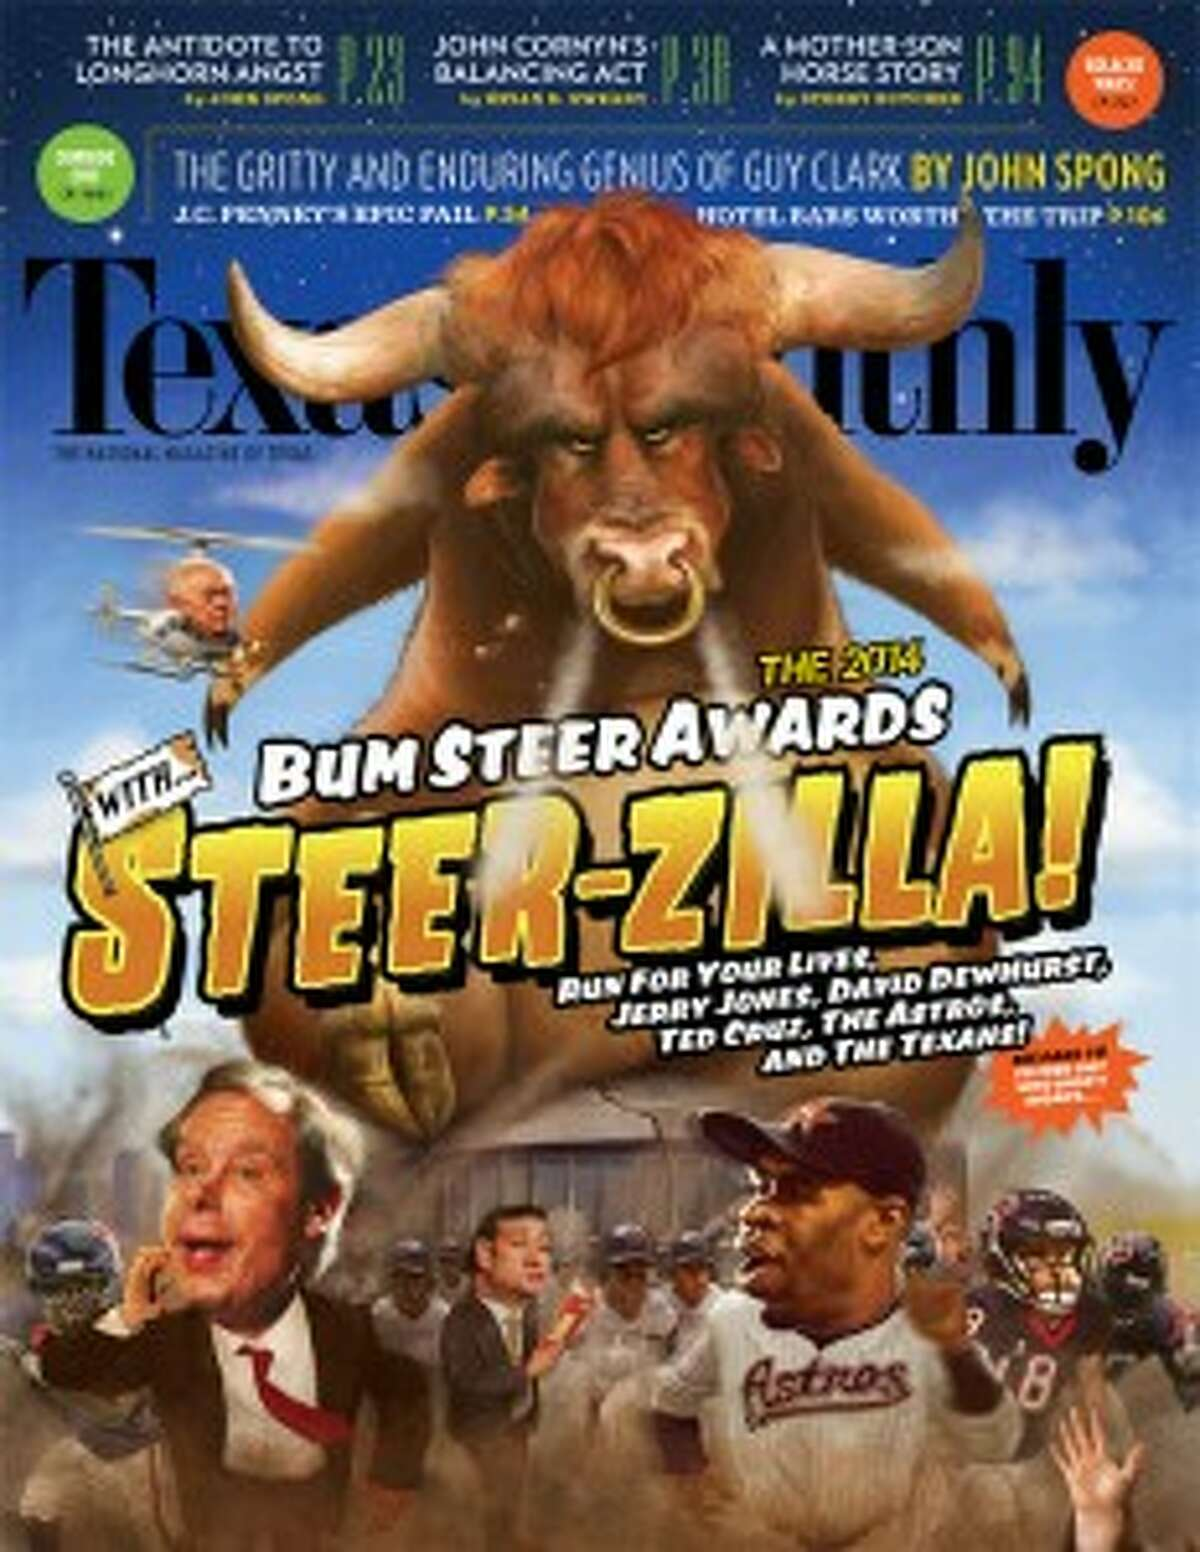 The Astrodome, Astros and Texans are all featured prominently on Texas Monthly's annual 'Bum Steer Awards' cover. The Astros' old uniform is mistakenly featured. (via Texas Monthly)